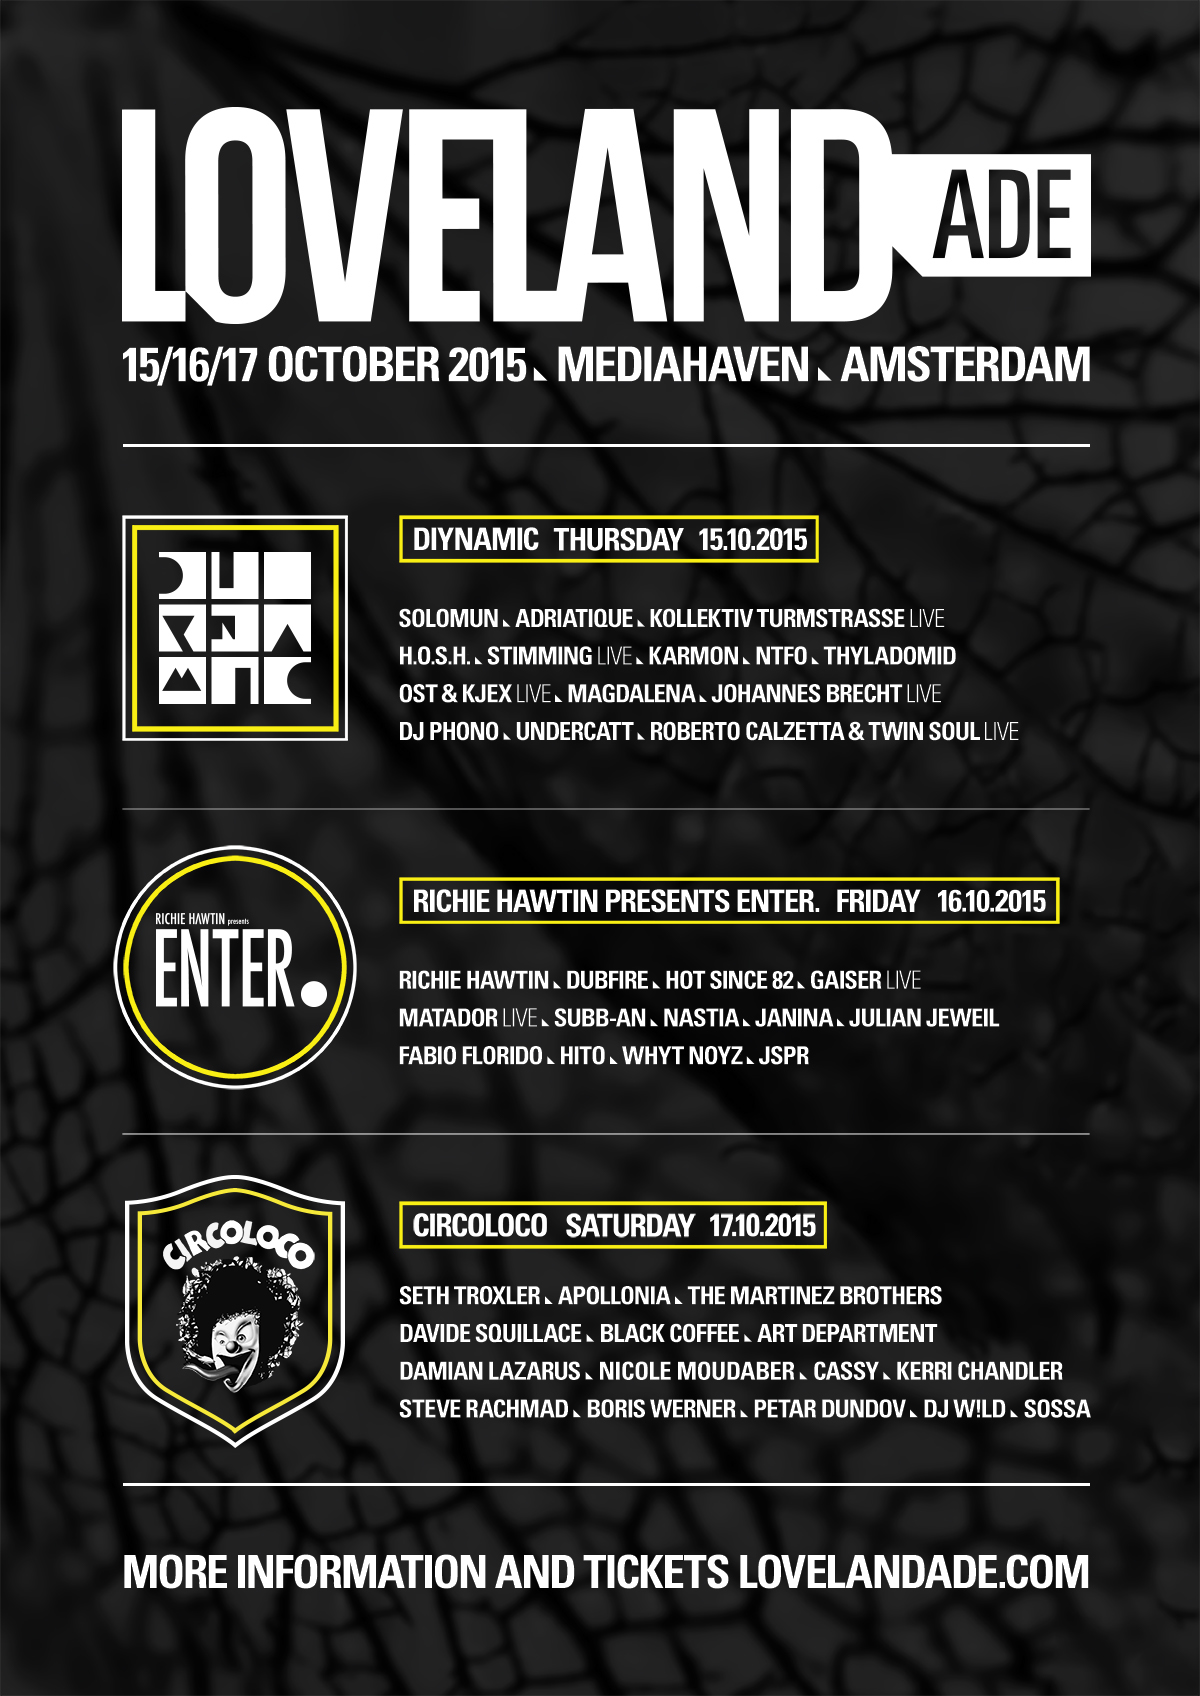 loveland,amsterdam dance event,ade,amsterdam,artwork,DANCE  ,Event